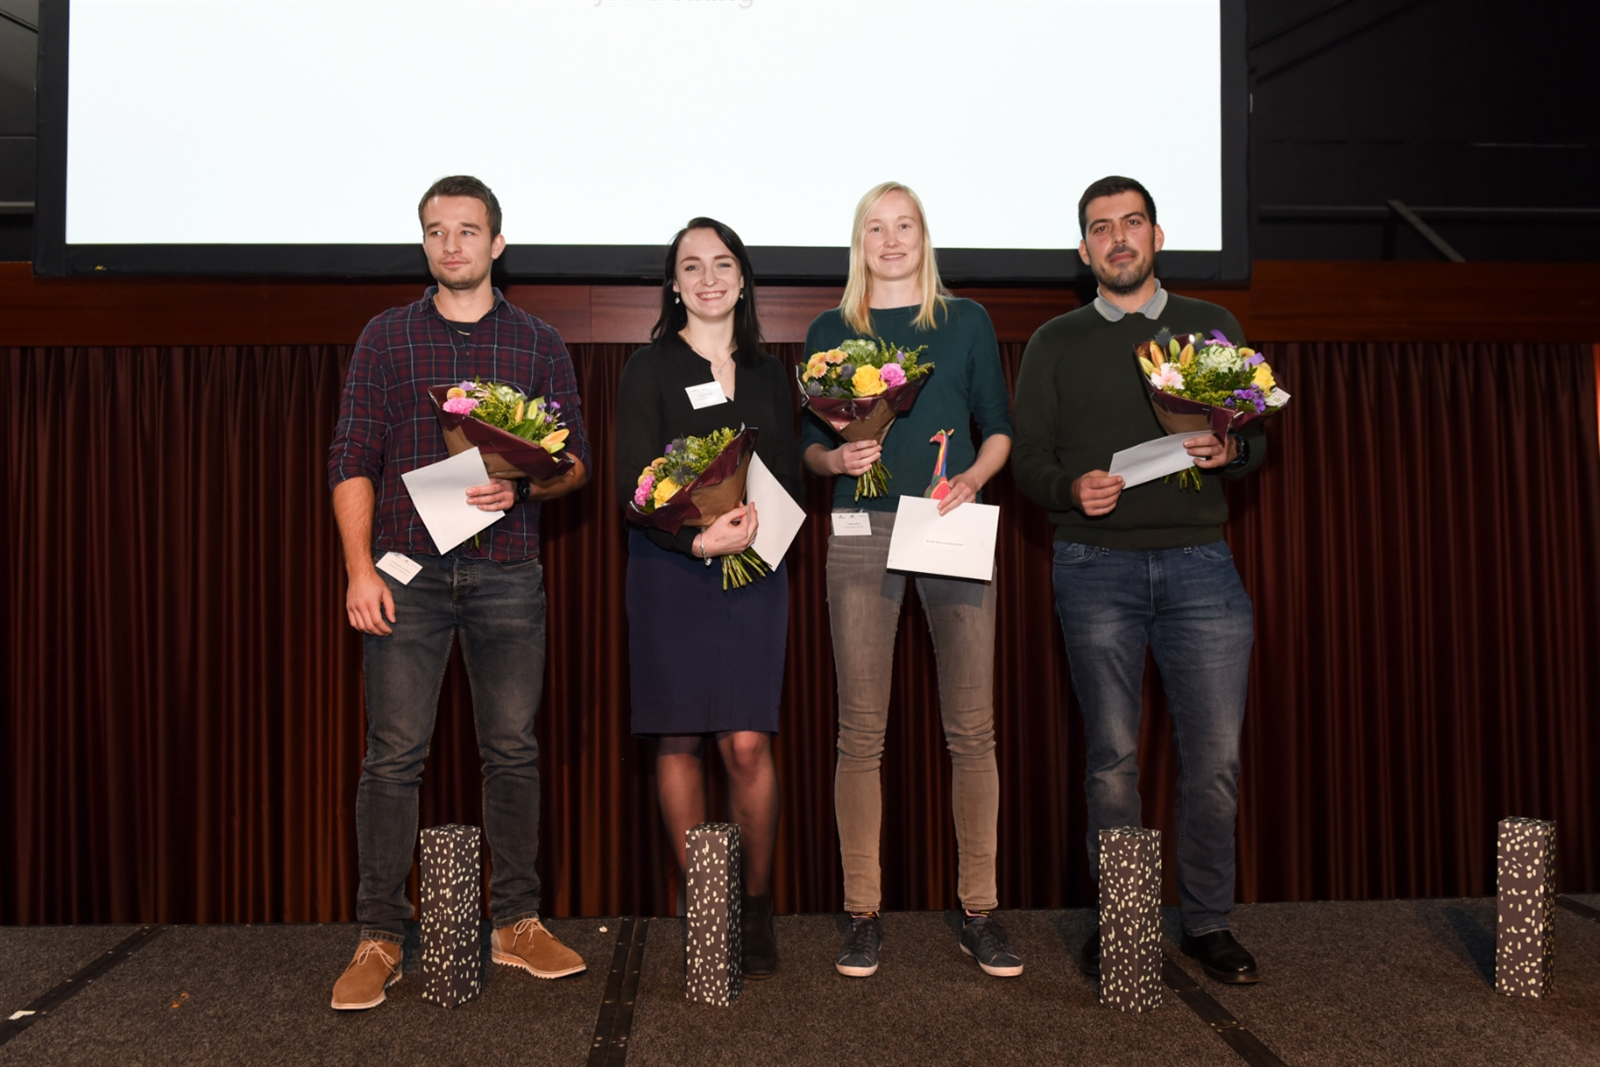 Winnaars Recycling Award 2018